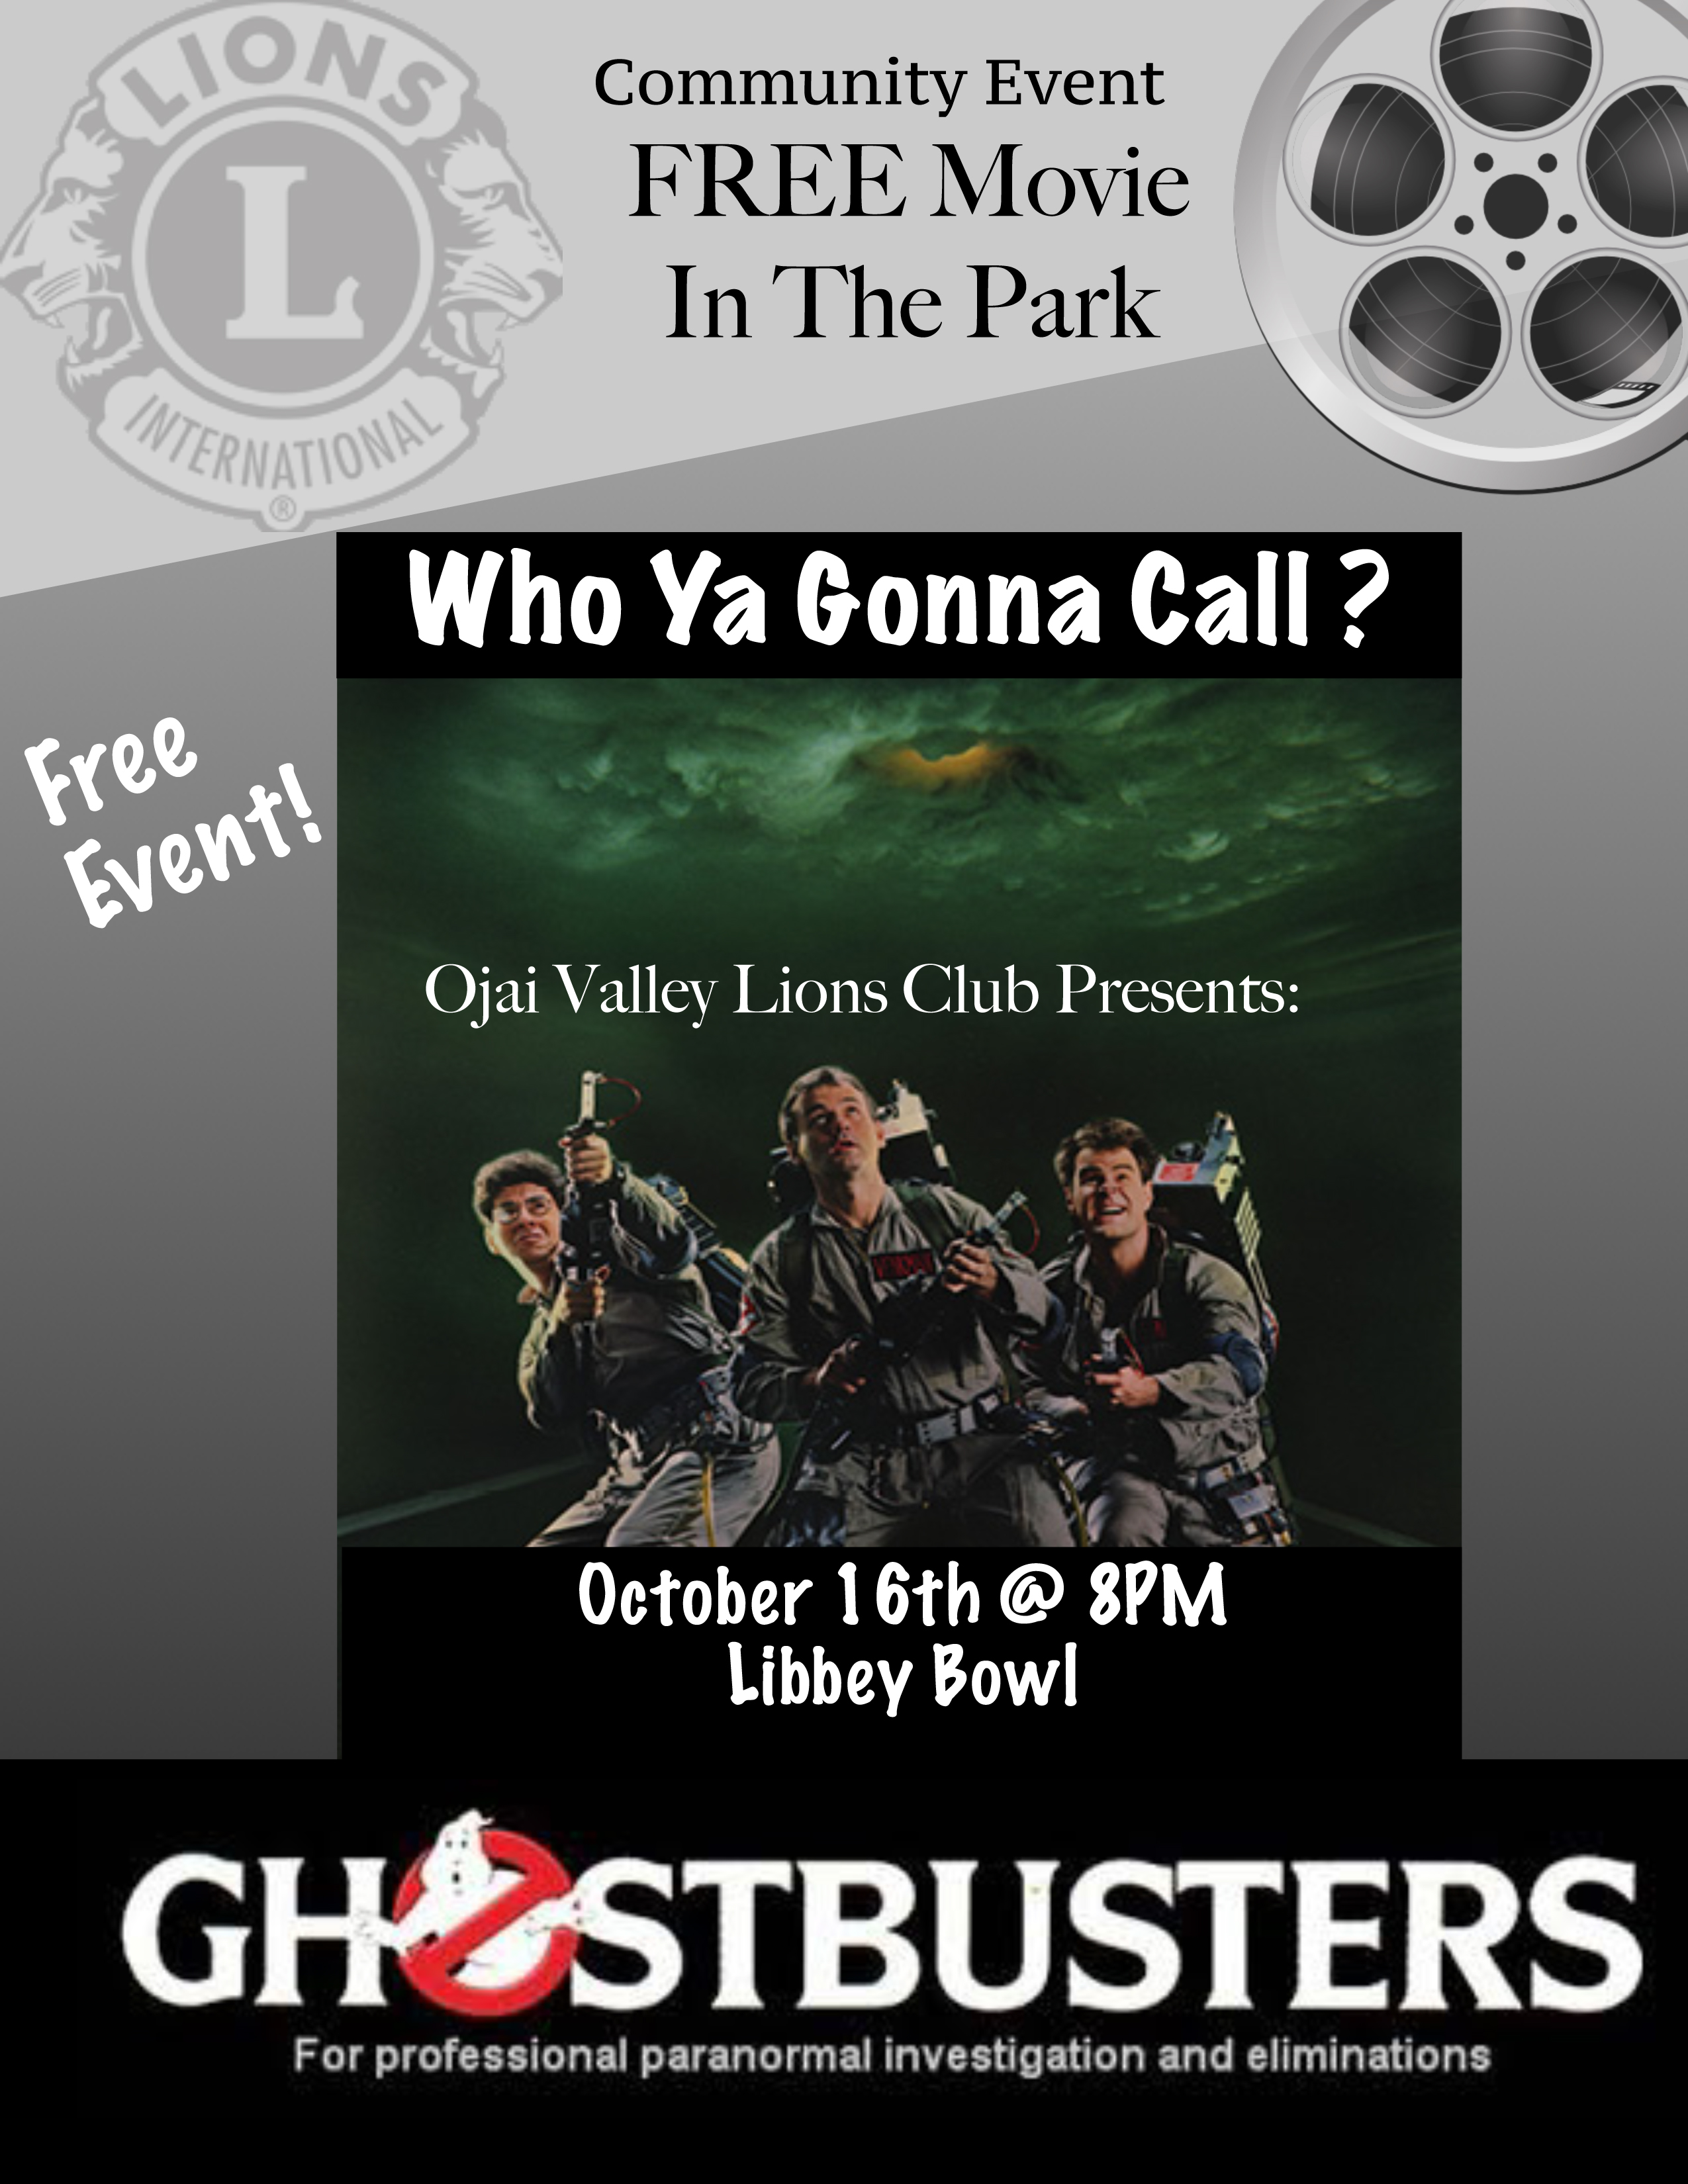 Free Movie In Libbey Park – This Friday 8pm FeaturingGhostbusters!